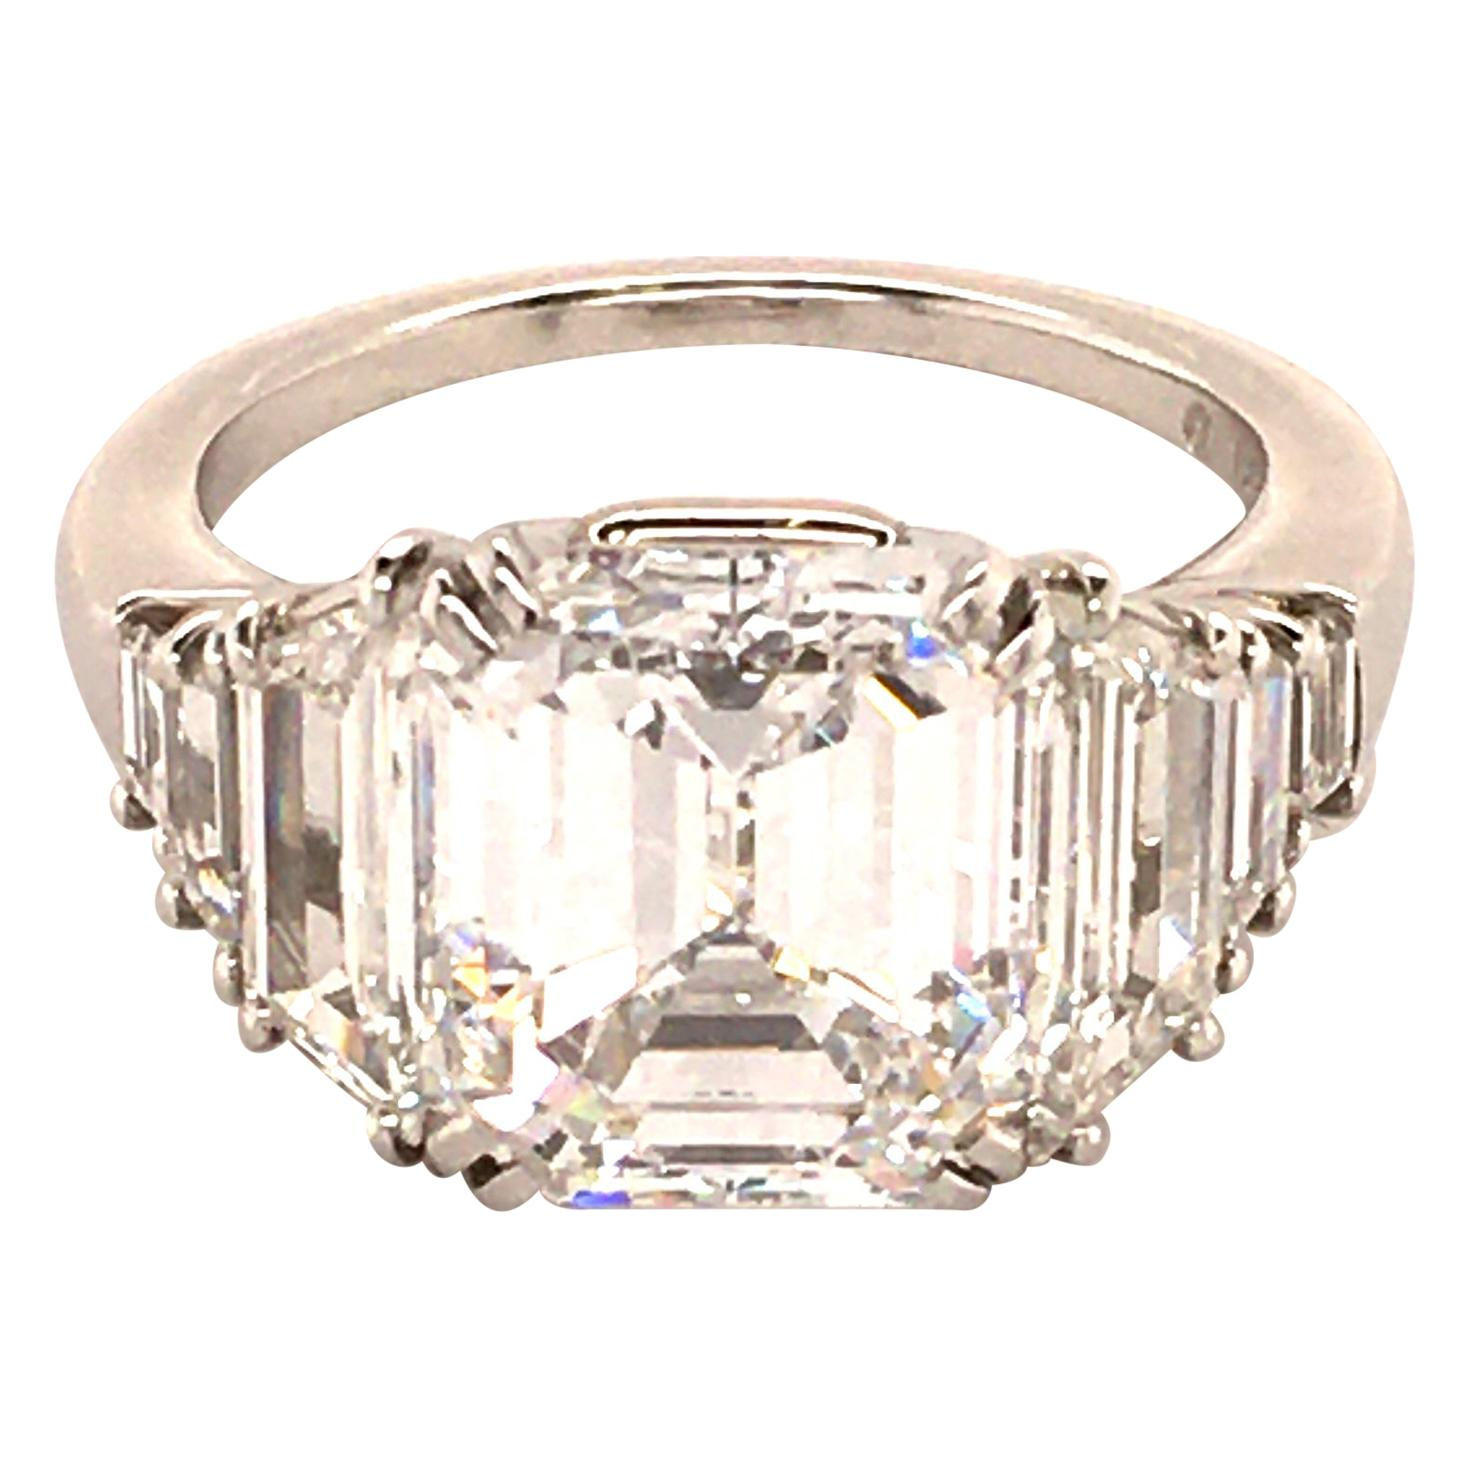 Harry Winston Gia Certified 4 63 Carat Emerald Cut Diamond Ring In Platinum 950 For Sale At 1stdibs